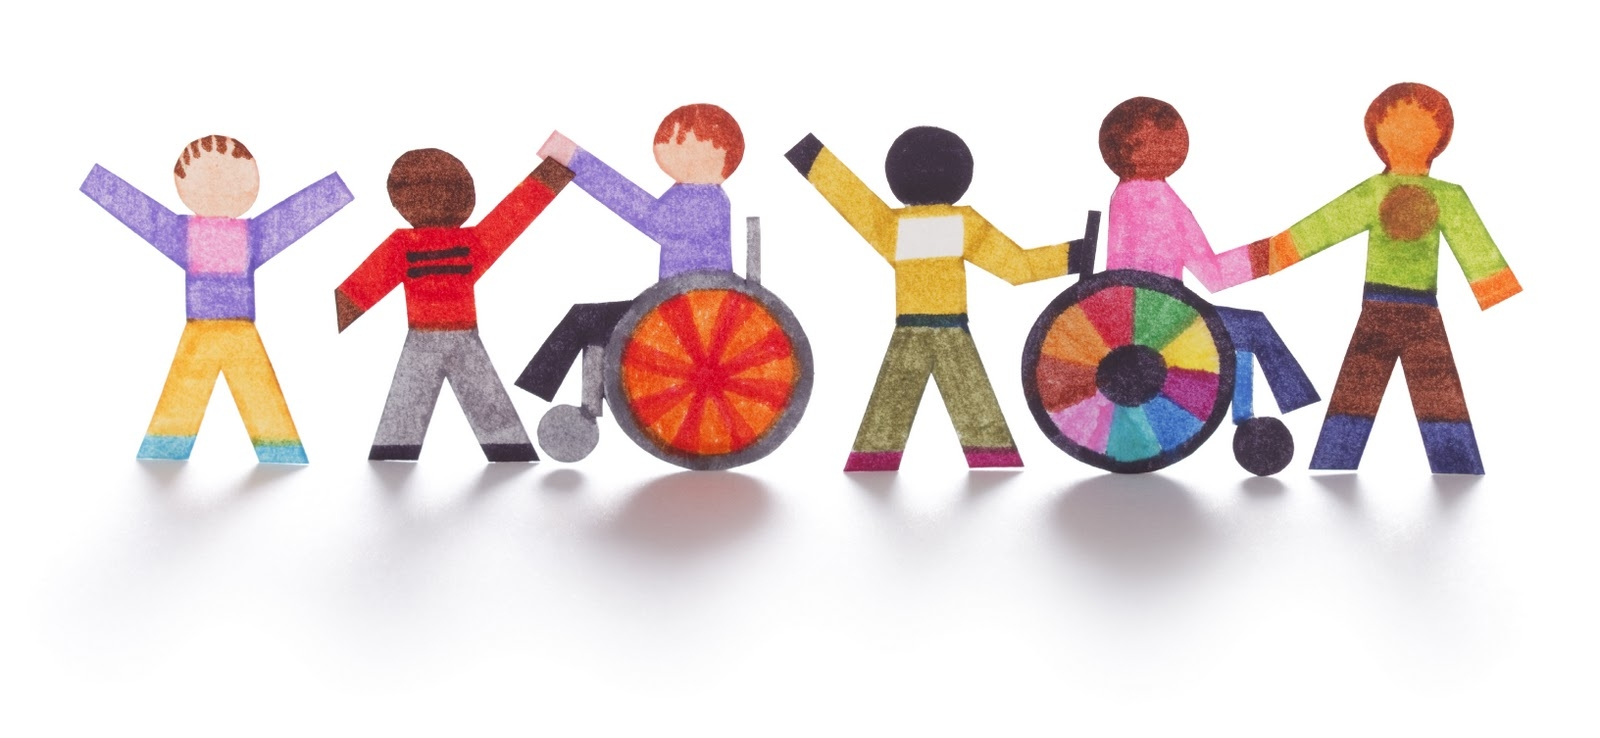 Community clipart physical disability Physical Zone Cliparts Disabled Children